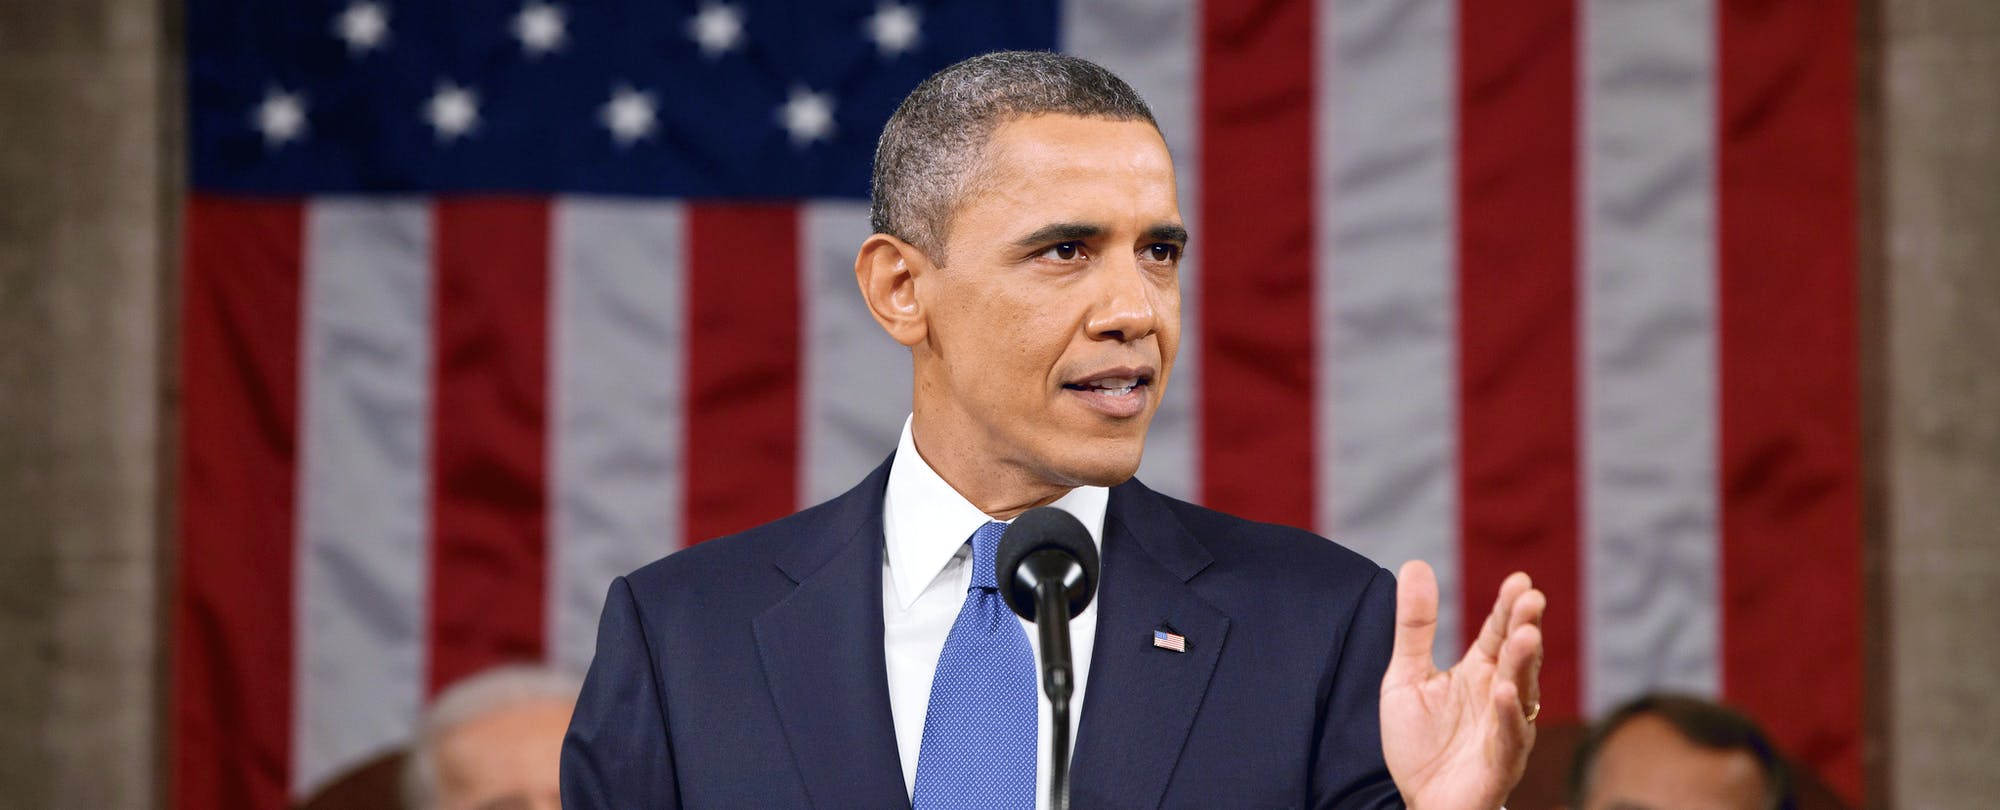 Obama Proposes 'Student Digital Privacy Act'